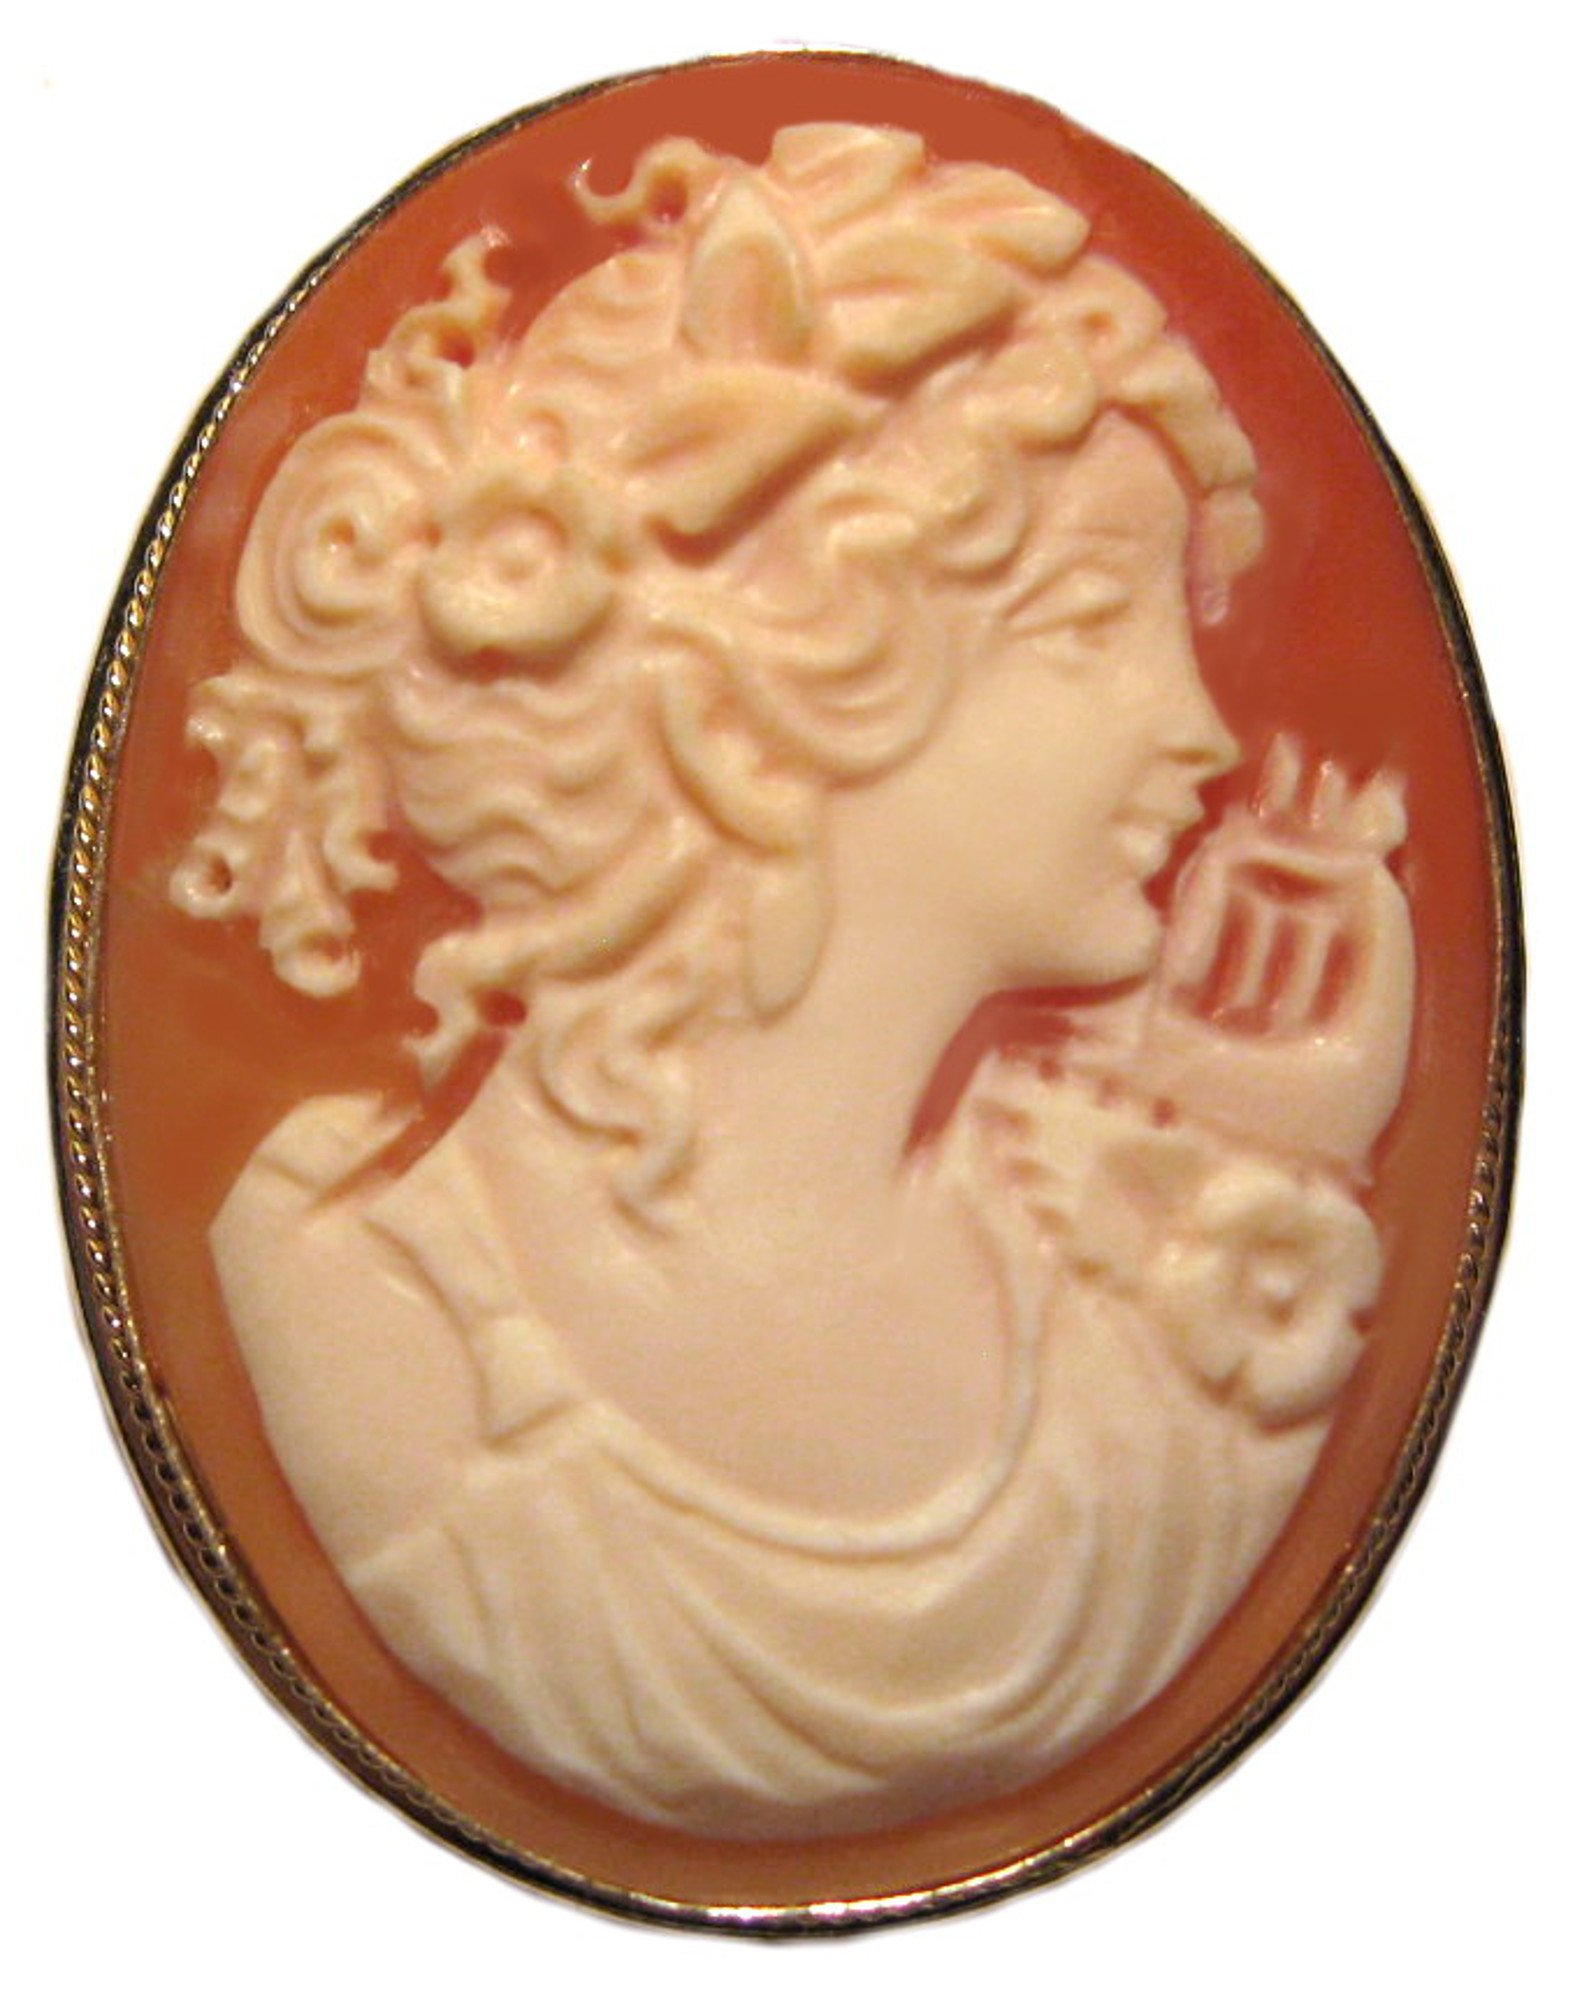 Autumn Love Cameo Brooch Pendant Enhancer Shell Sterling Silver 18k Gold Overlay Italian